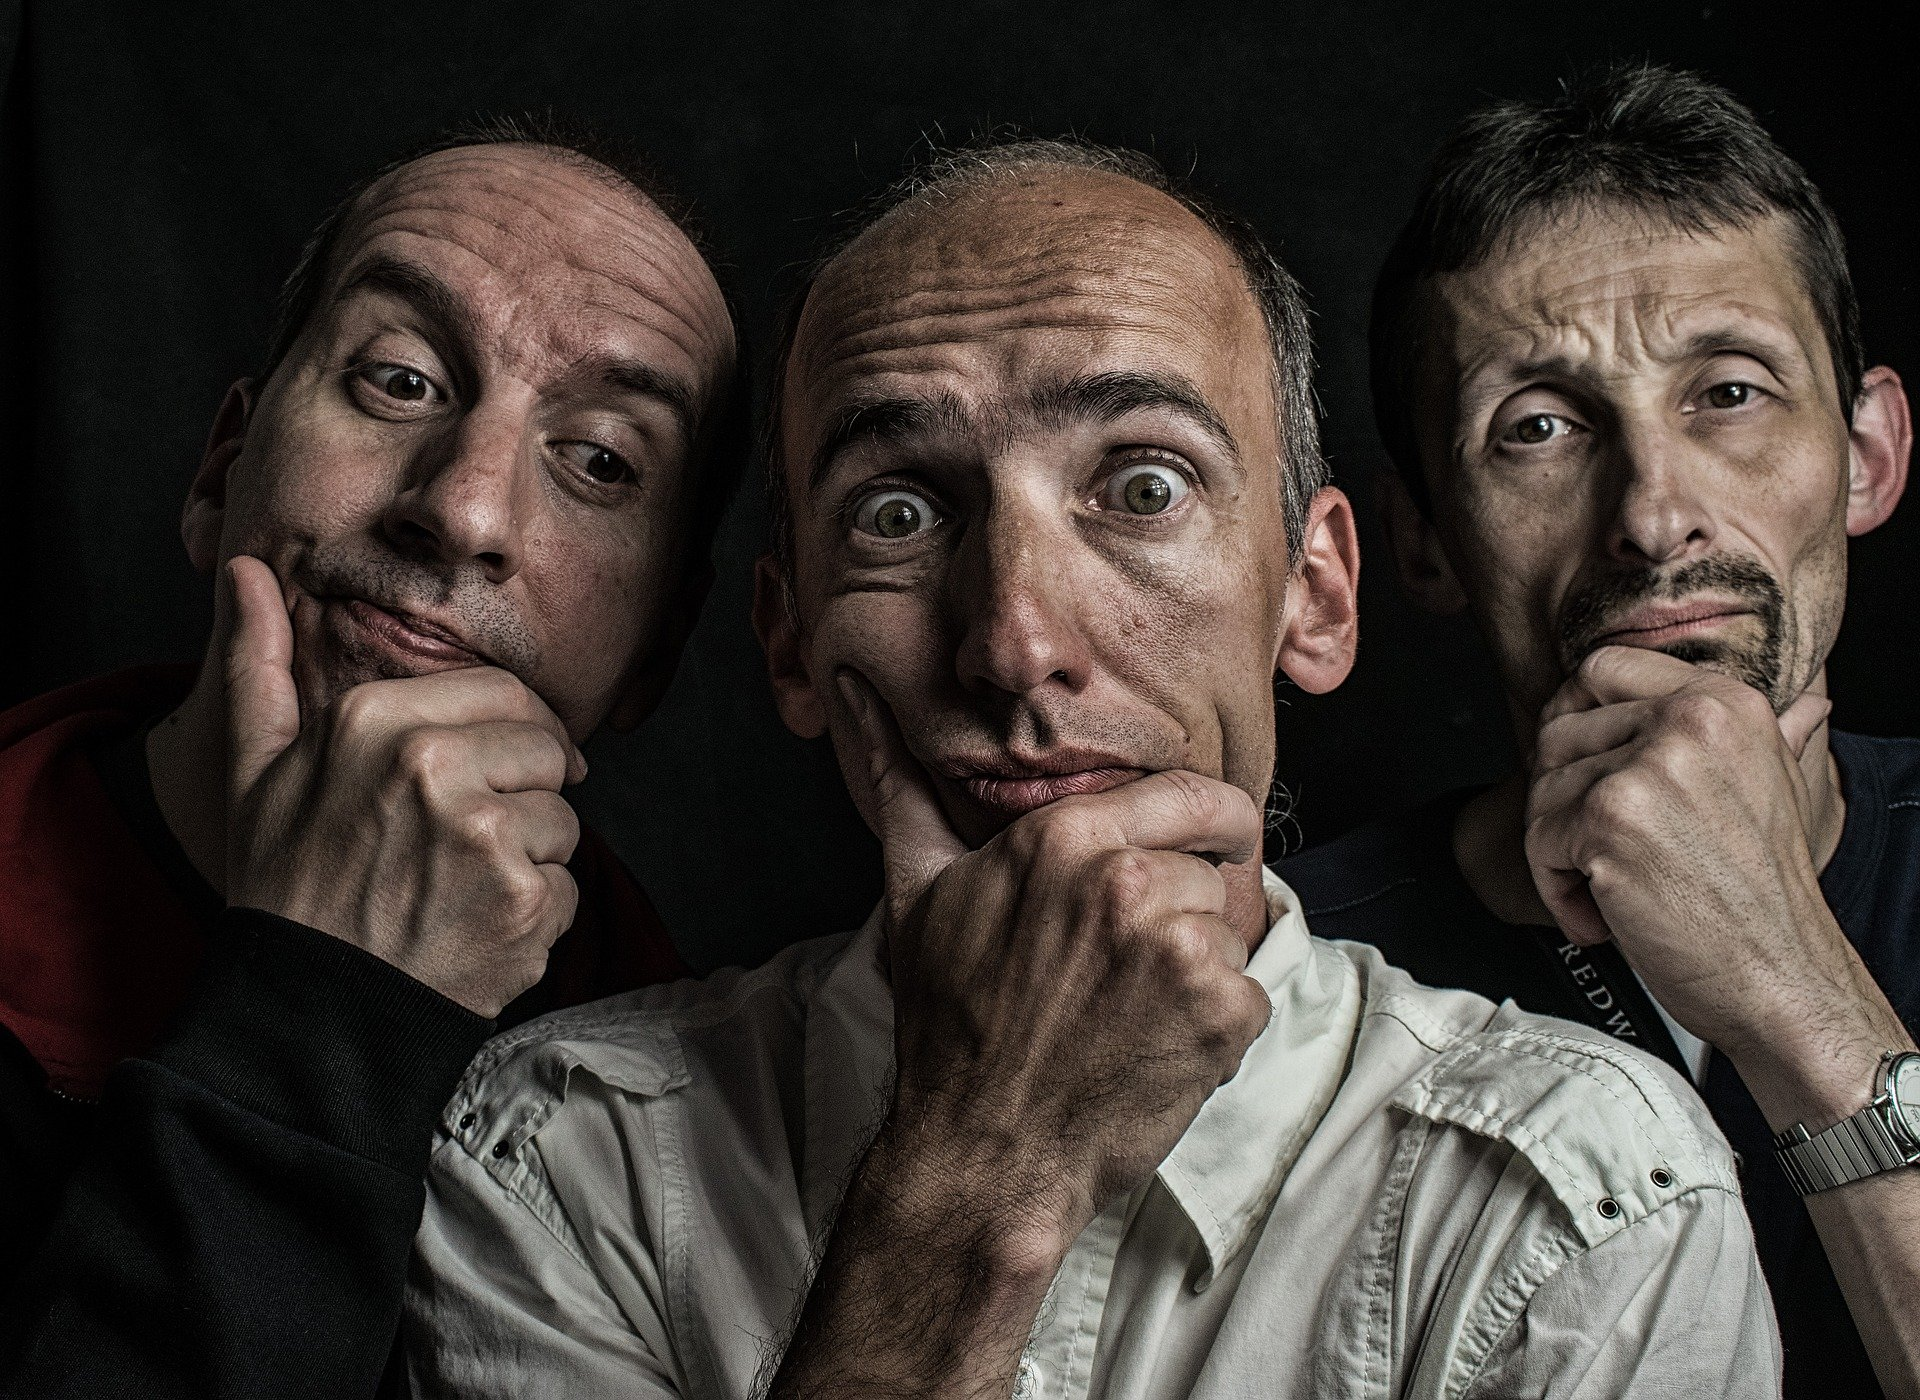 Three men with their hands against their chins while looking thoughtful   Photo: Pixabay/Szilárd Szabó